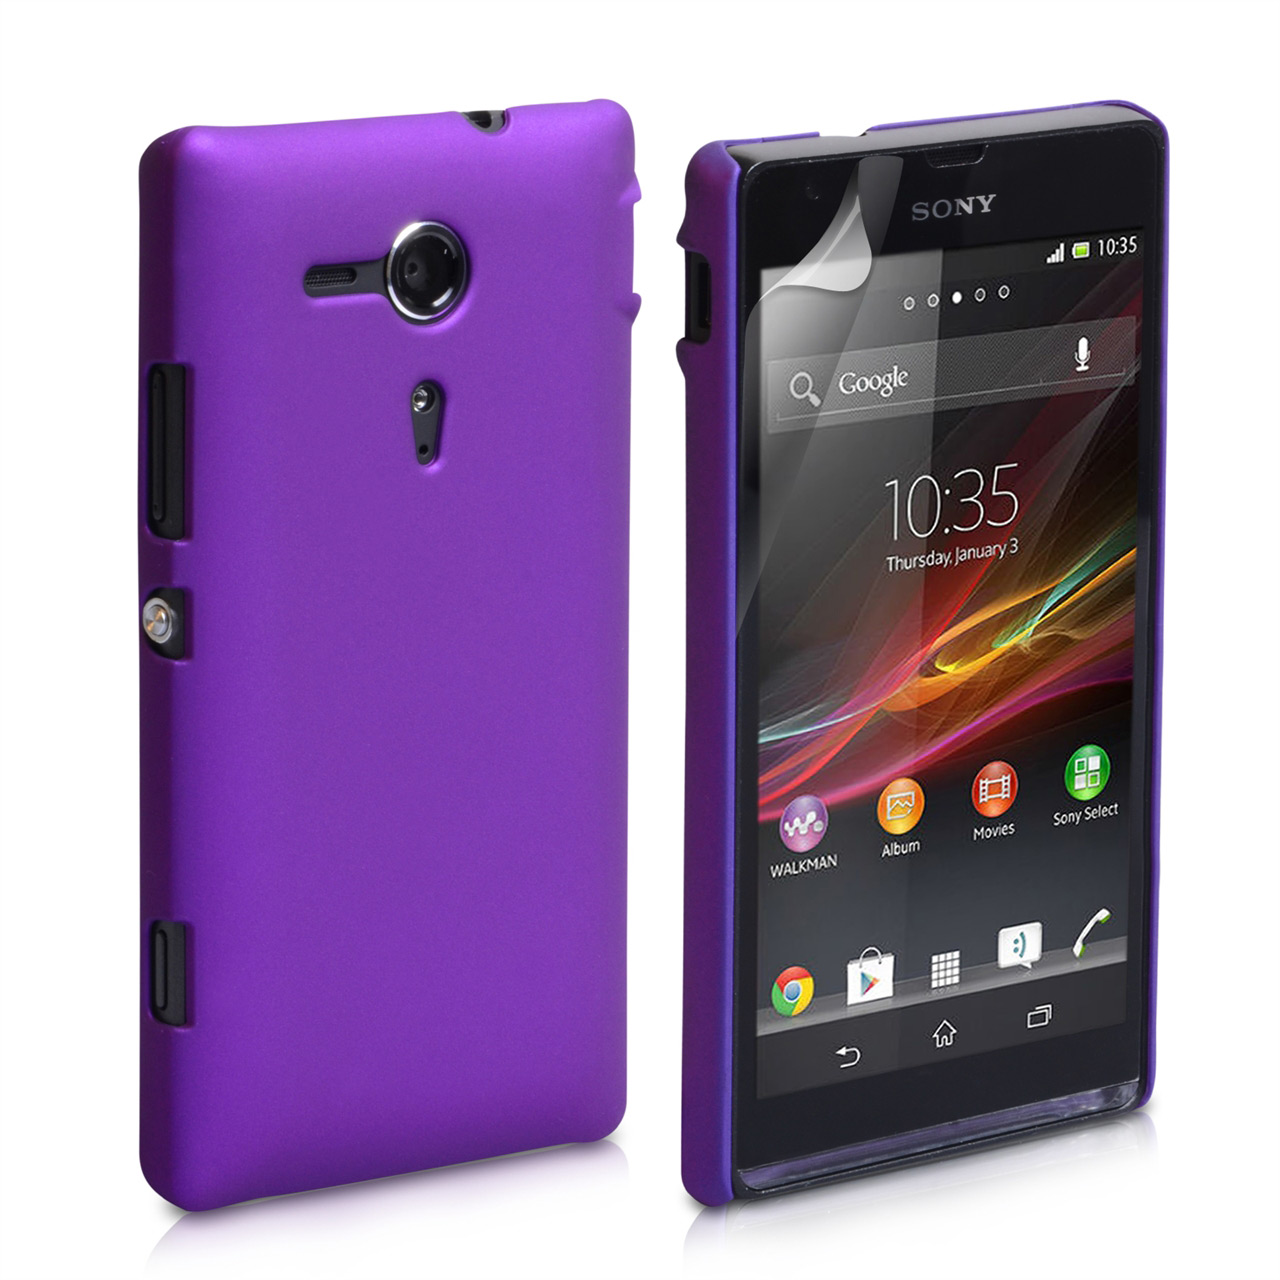 YouSave Accessories Sony Xperia SP Hard Hybrid Case - Purple